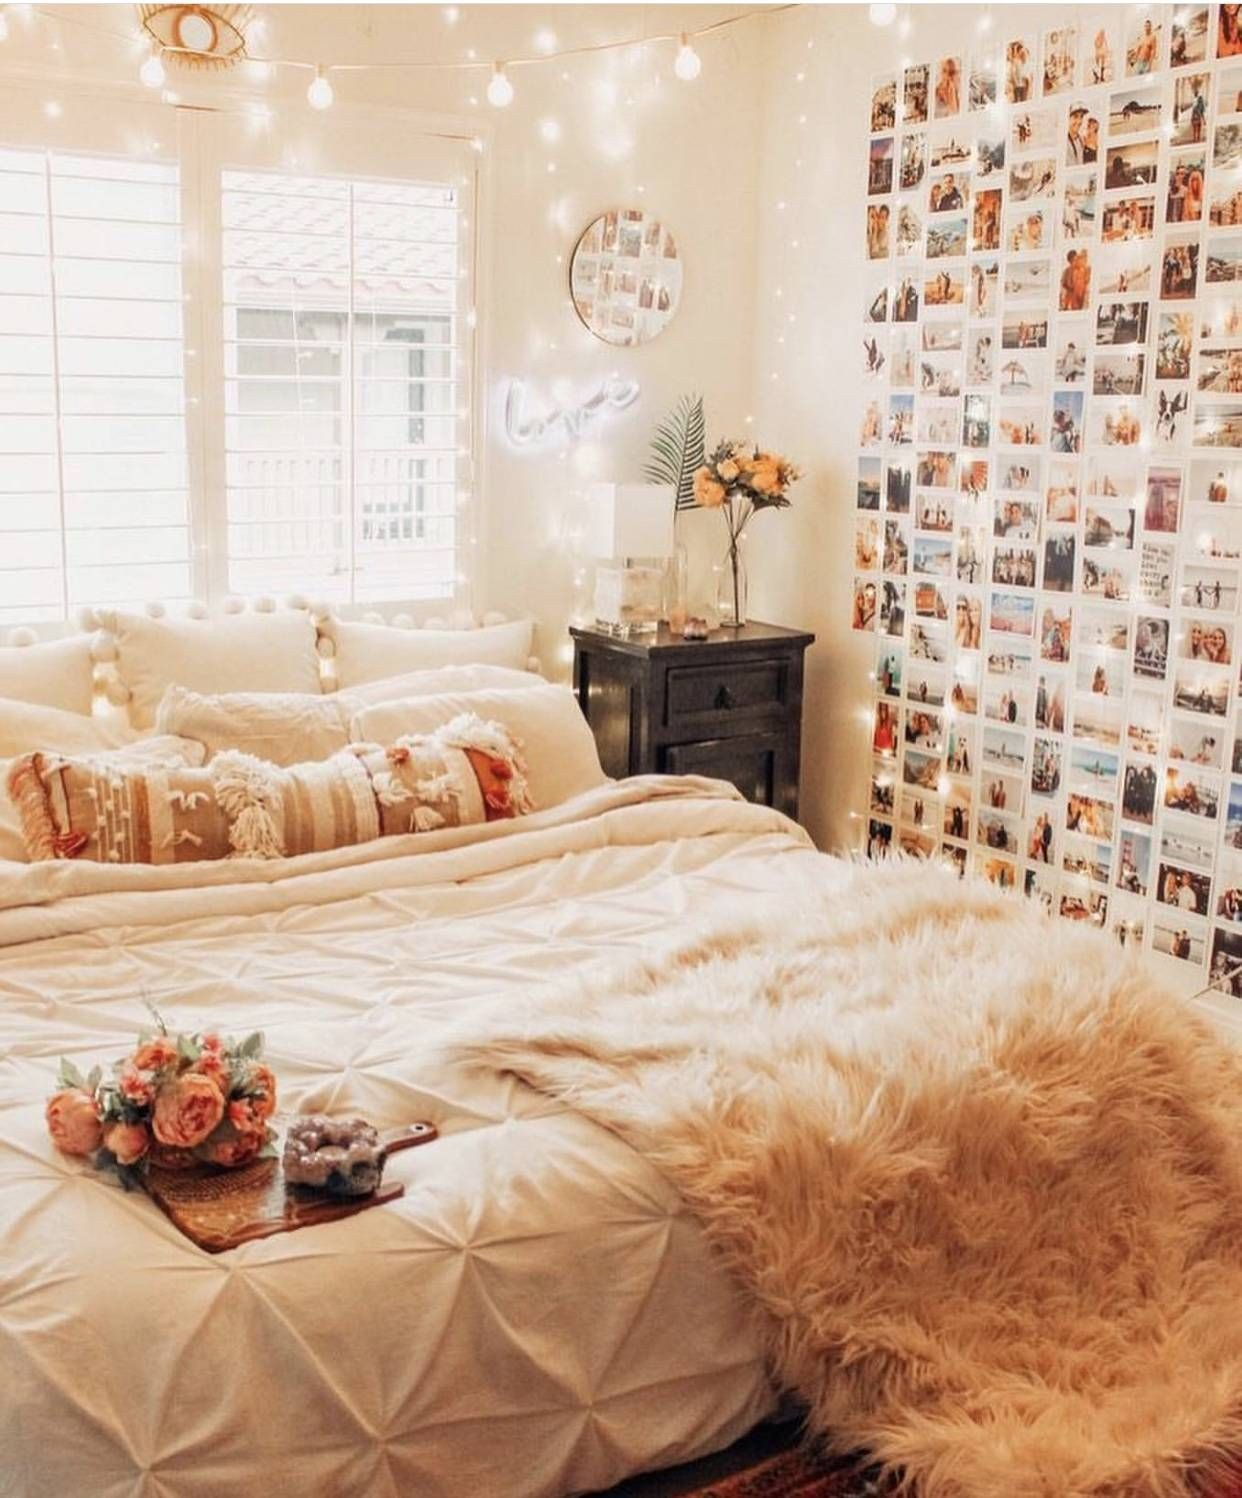 Paris Decor for Bedroom Elegant Vsco Decor Ideas Must Have Decor for A Vsco Room